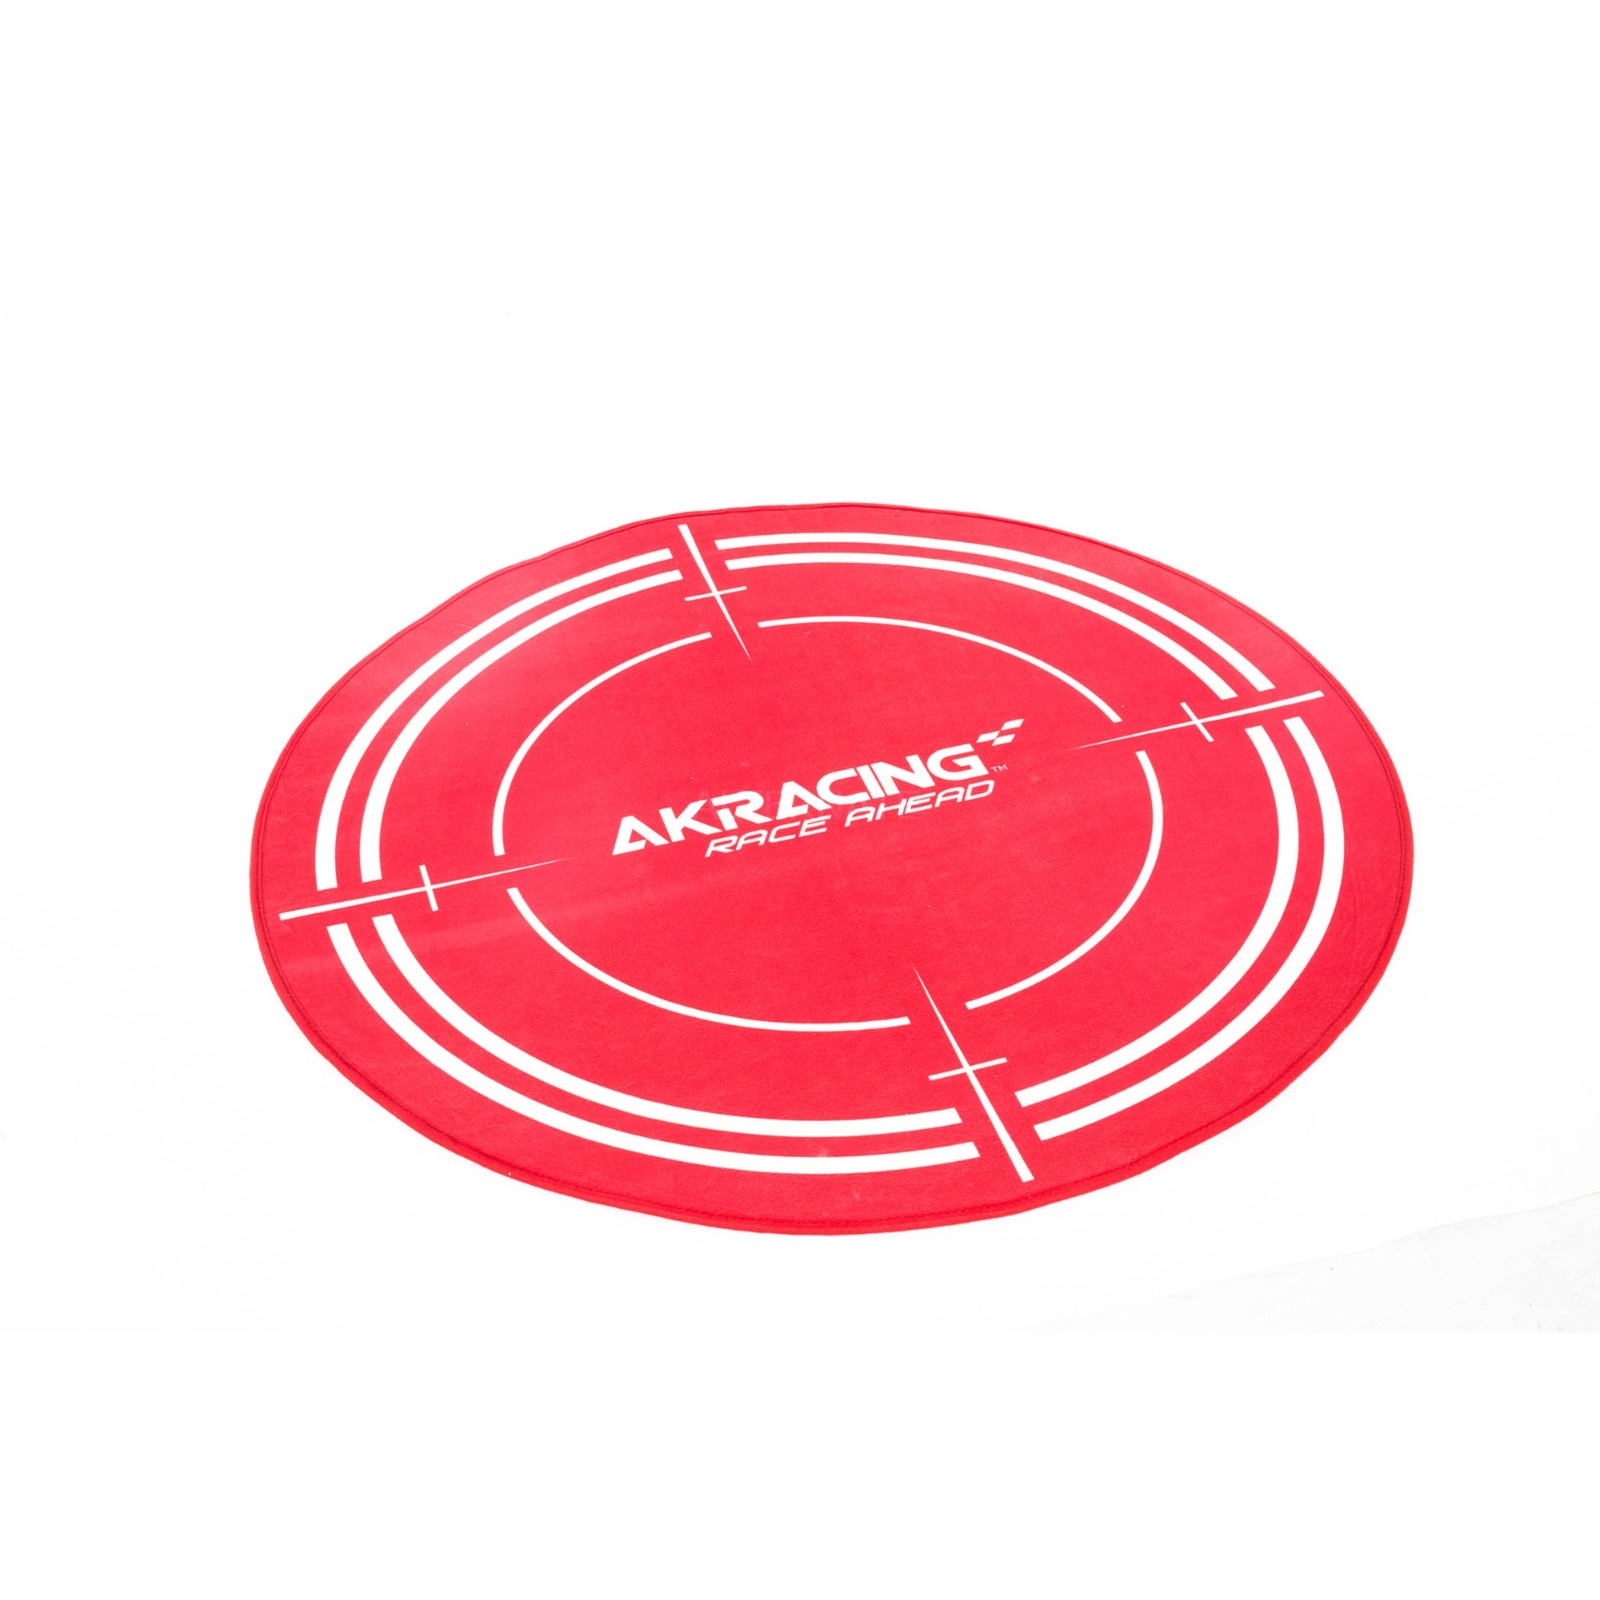 AK-FLOORMAT-RD Rouge Polyester protection de surfaces, Tapis